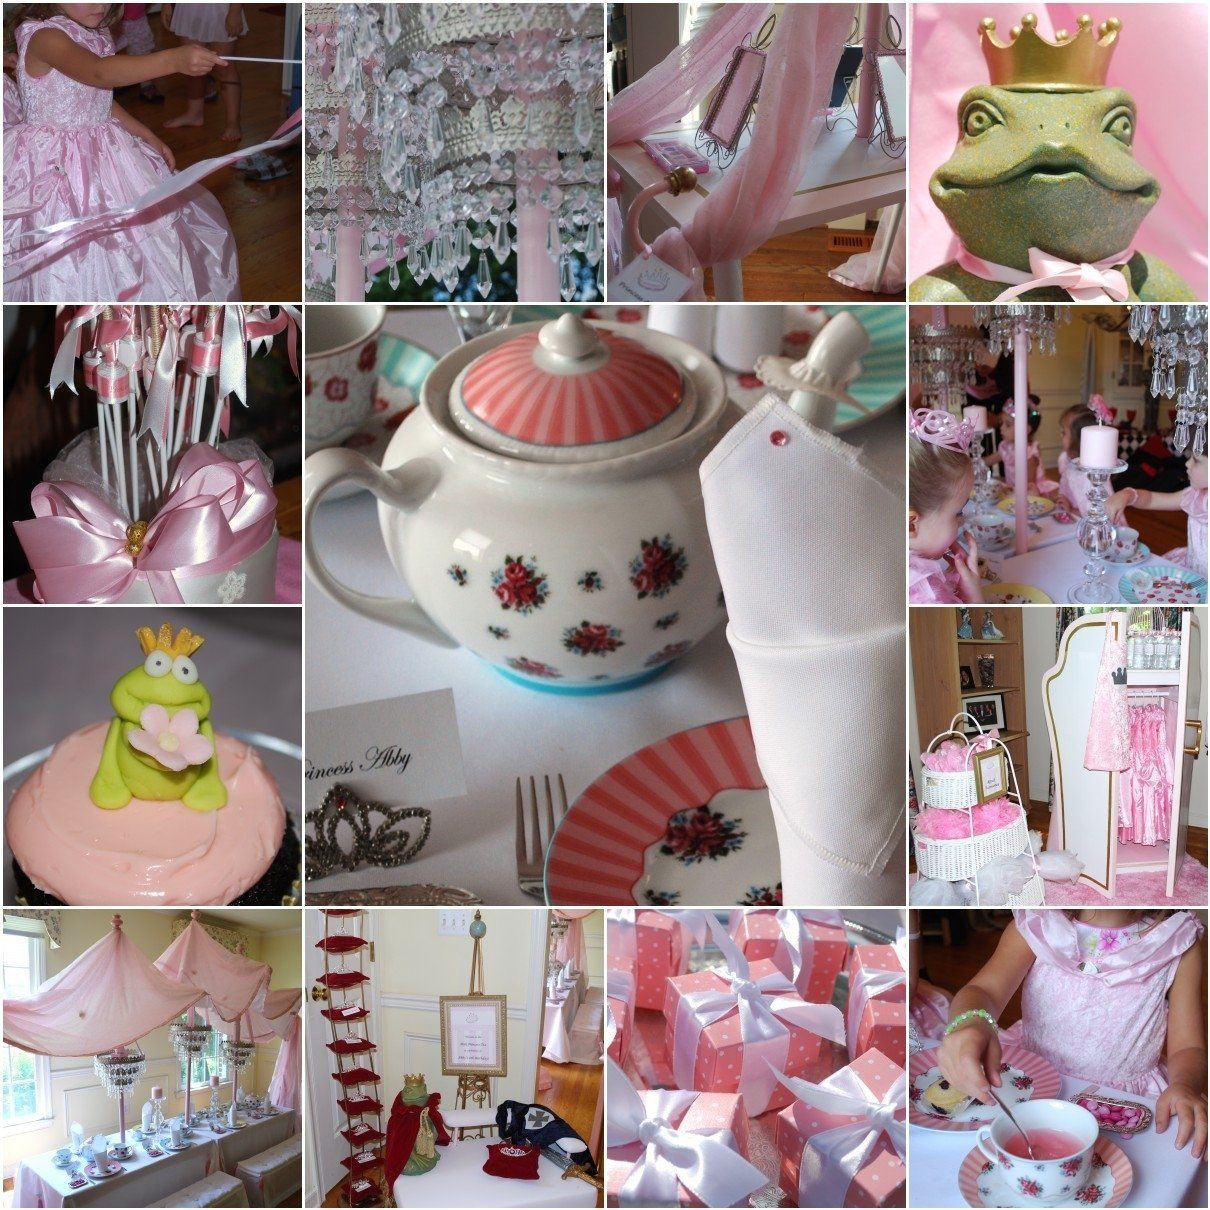 10 Stylish Princess Tea Party Birthday Ideas princess tea party birthday home party ideas 2020